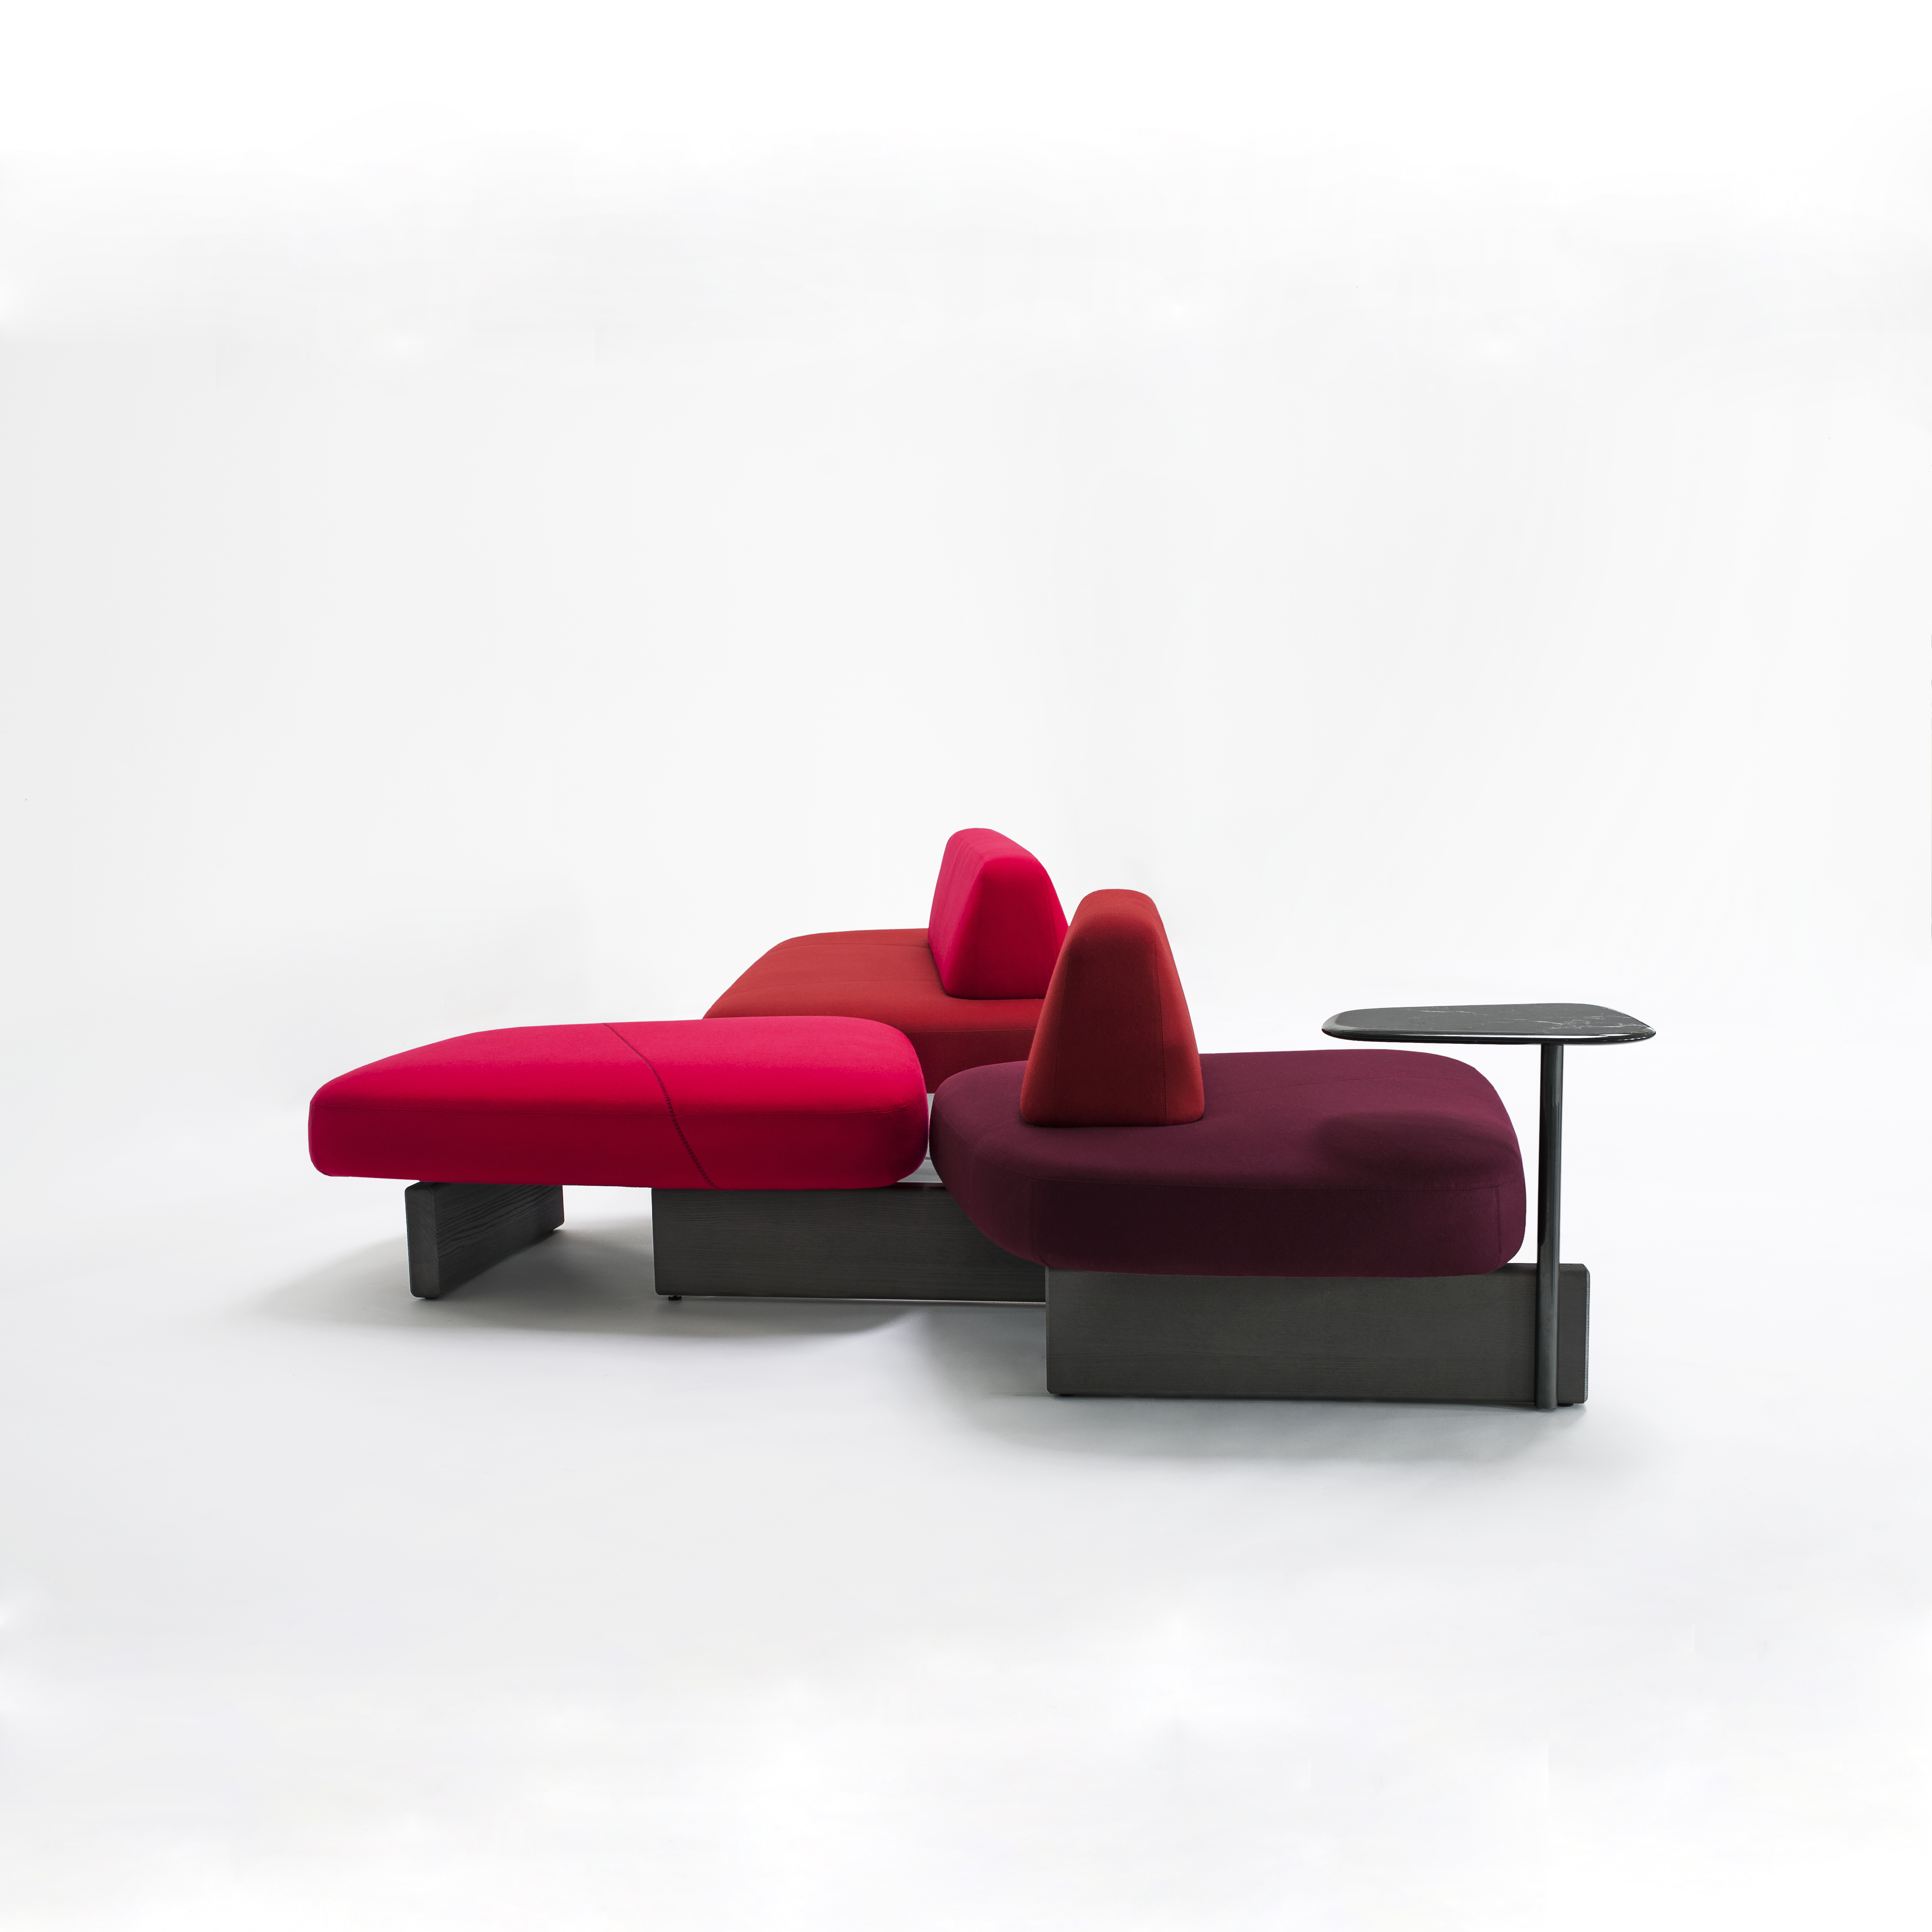 of additional images chaise alluring lounge with indoor chairs